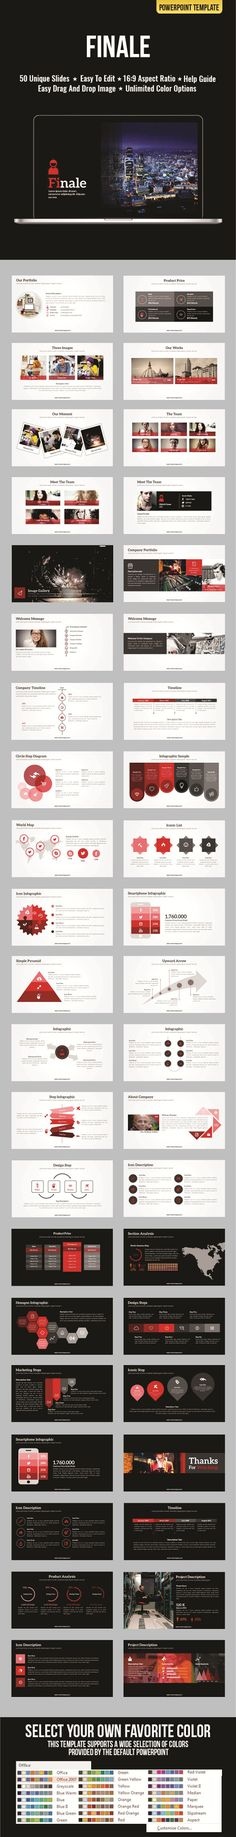 Powerpoint templates and keynote templates download httpwww finale powerpoint template design download httpgraphicriveritem toneelgroepblik Image collections